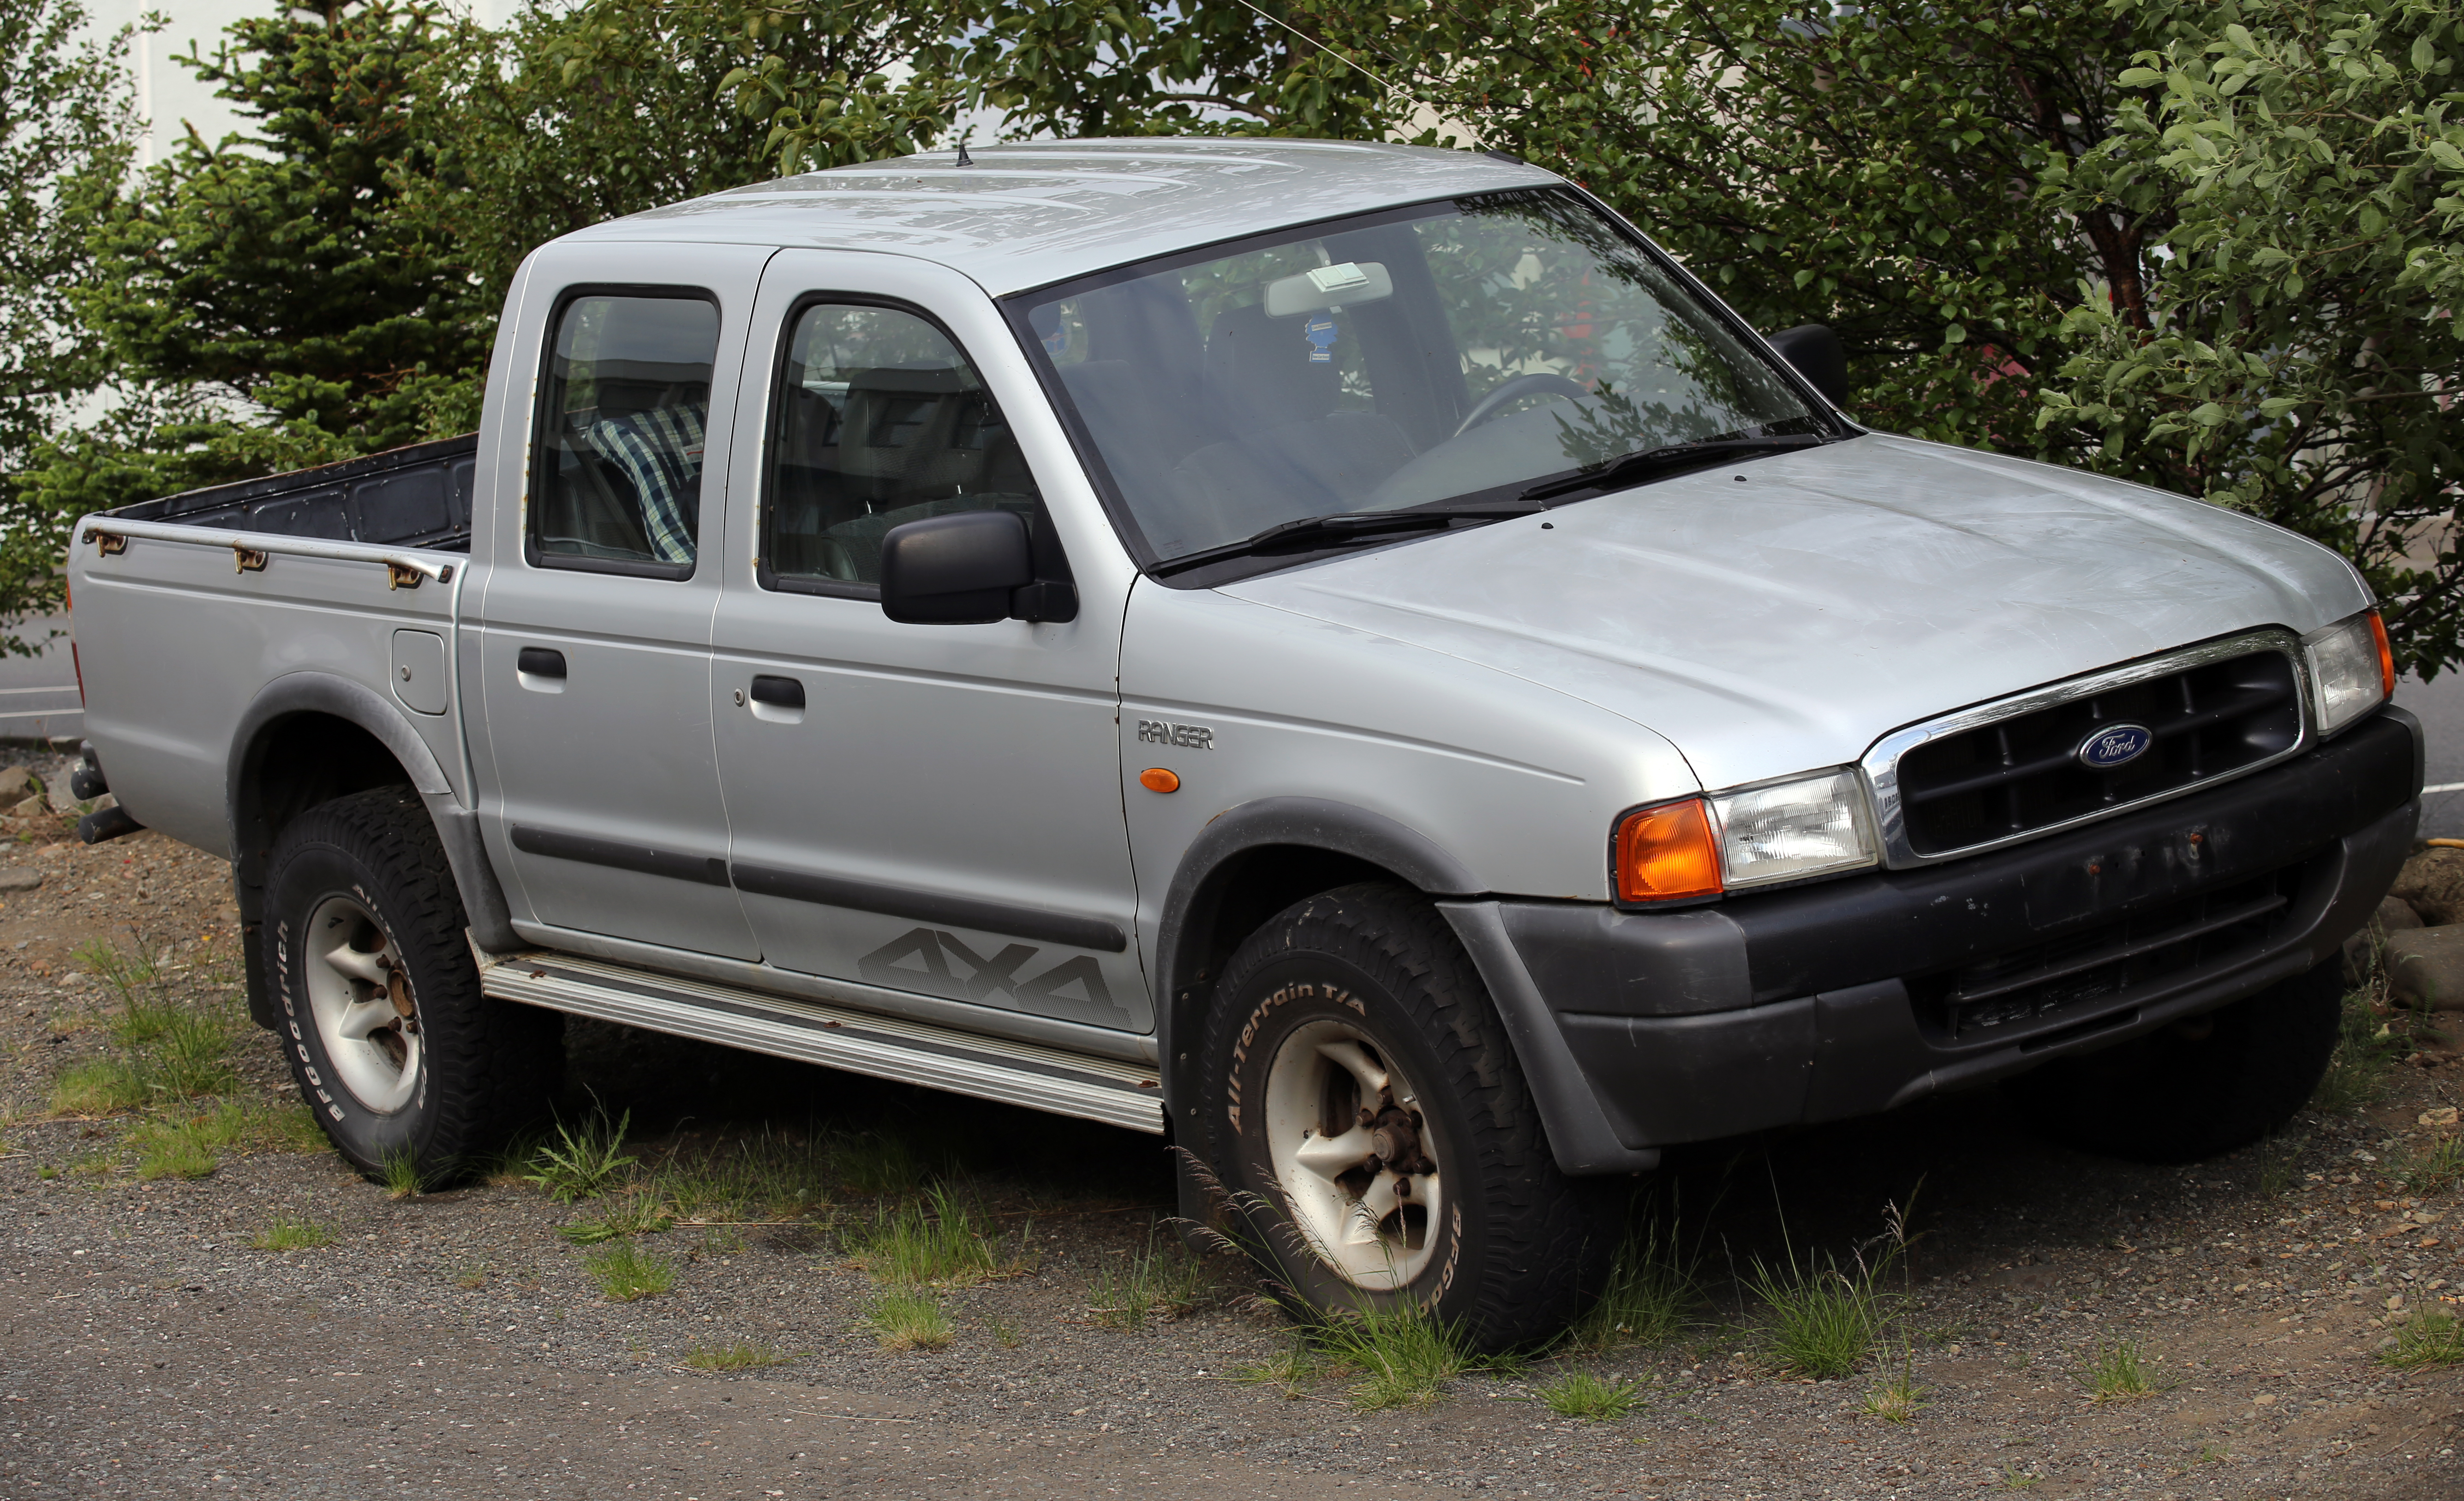 Ford Ranger Modified >> File:Ford Ranger Double Cab 4x4, first generation.jpg - Wikimedia Commons